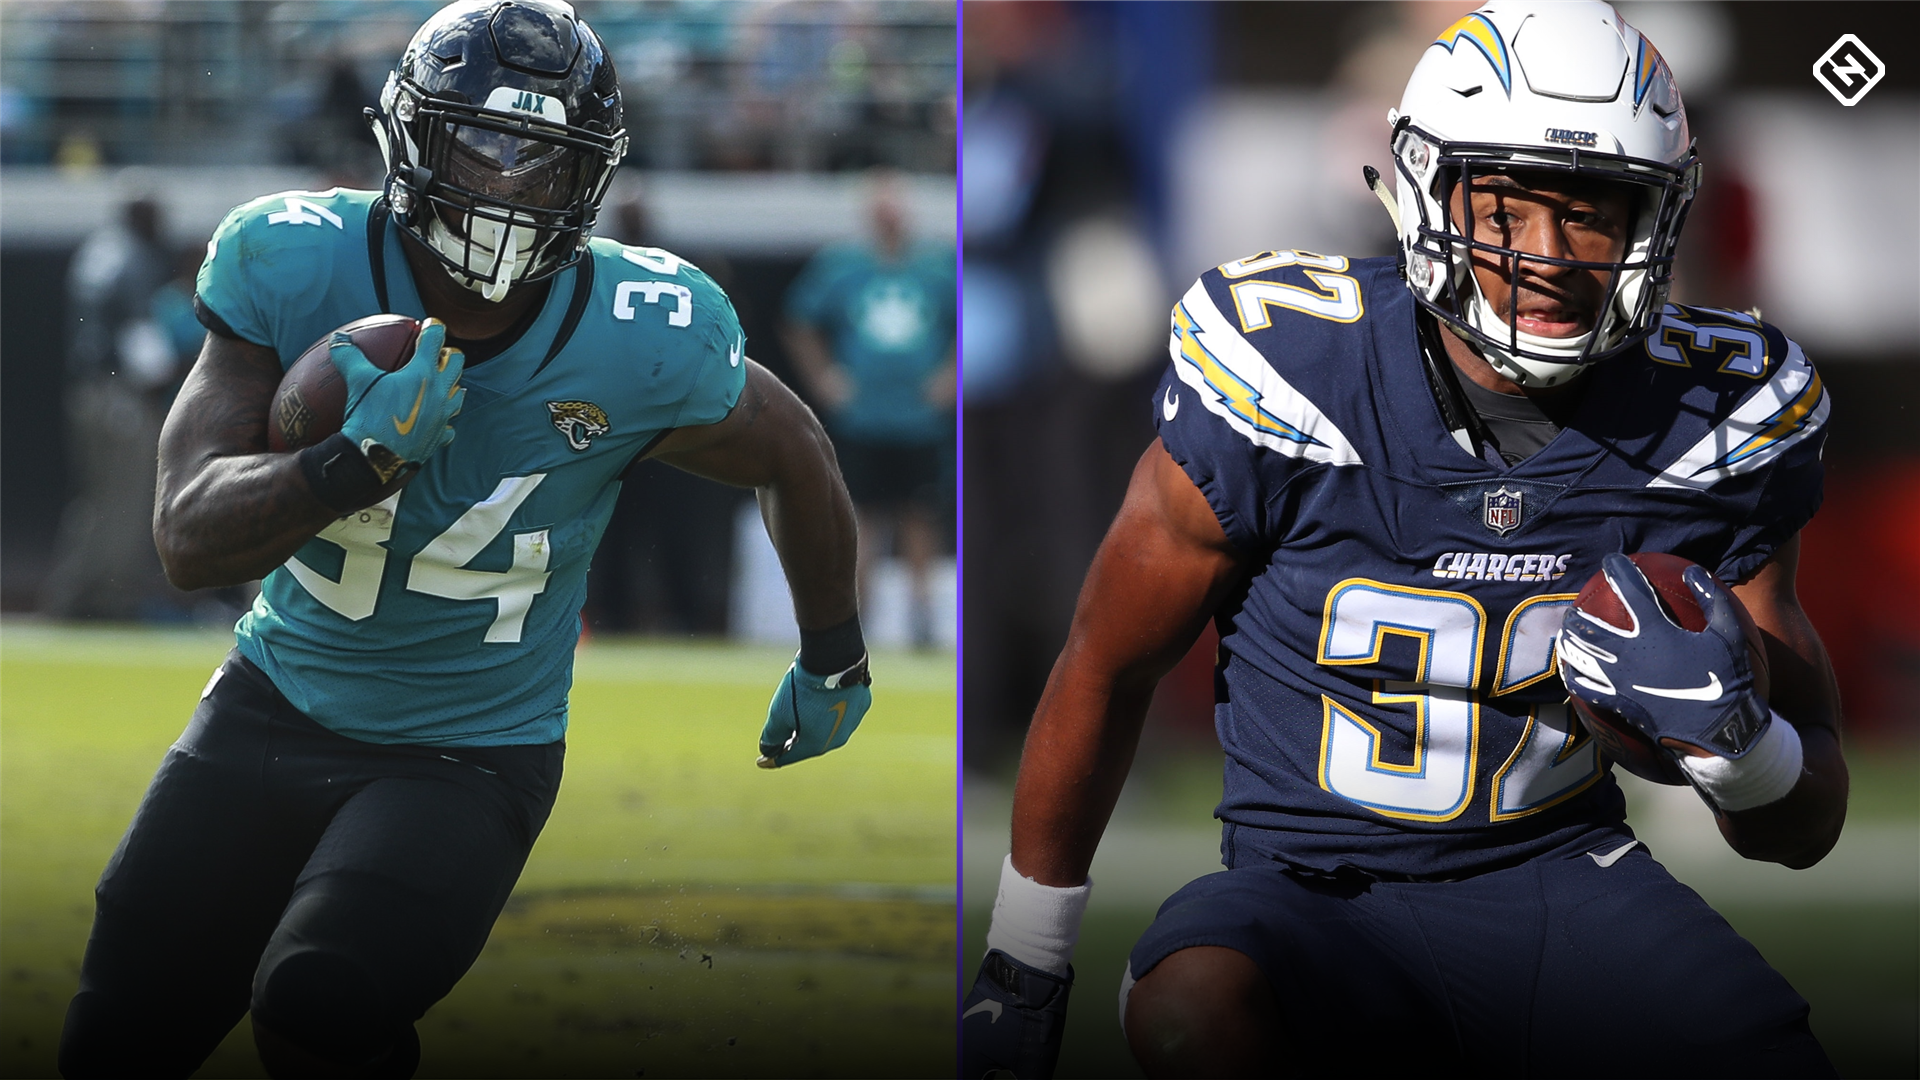 Fantasy Football Week 13 Waiver Pickups: Possible Leonard Fournette suspension, Melvin Gordon injury make Carlos Hyde, Justin Jackson key 'adds'